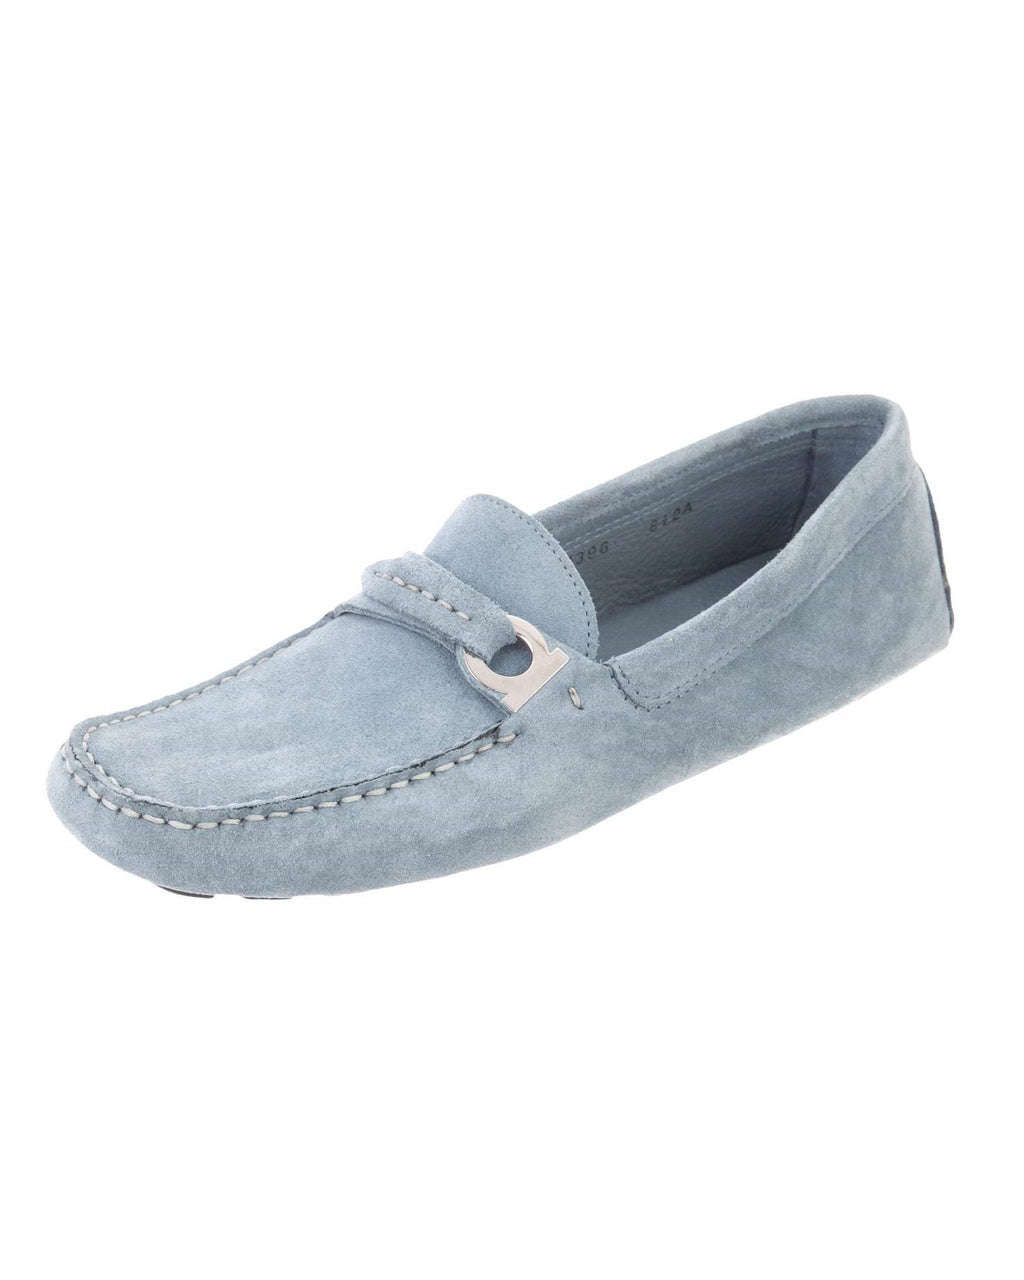 Salvatore Ferragamo Blue Suede Loafers